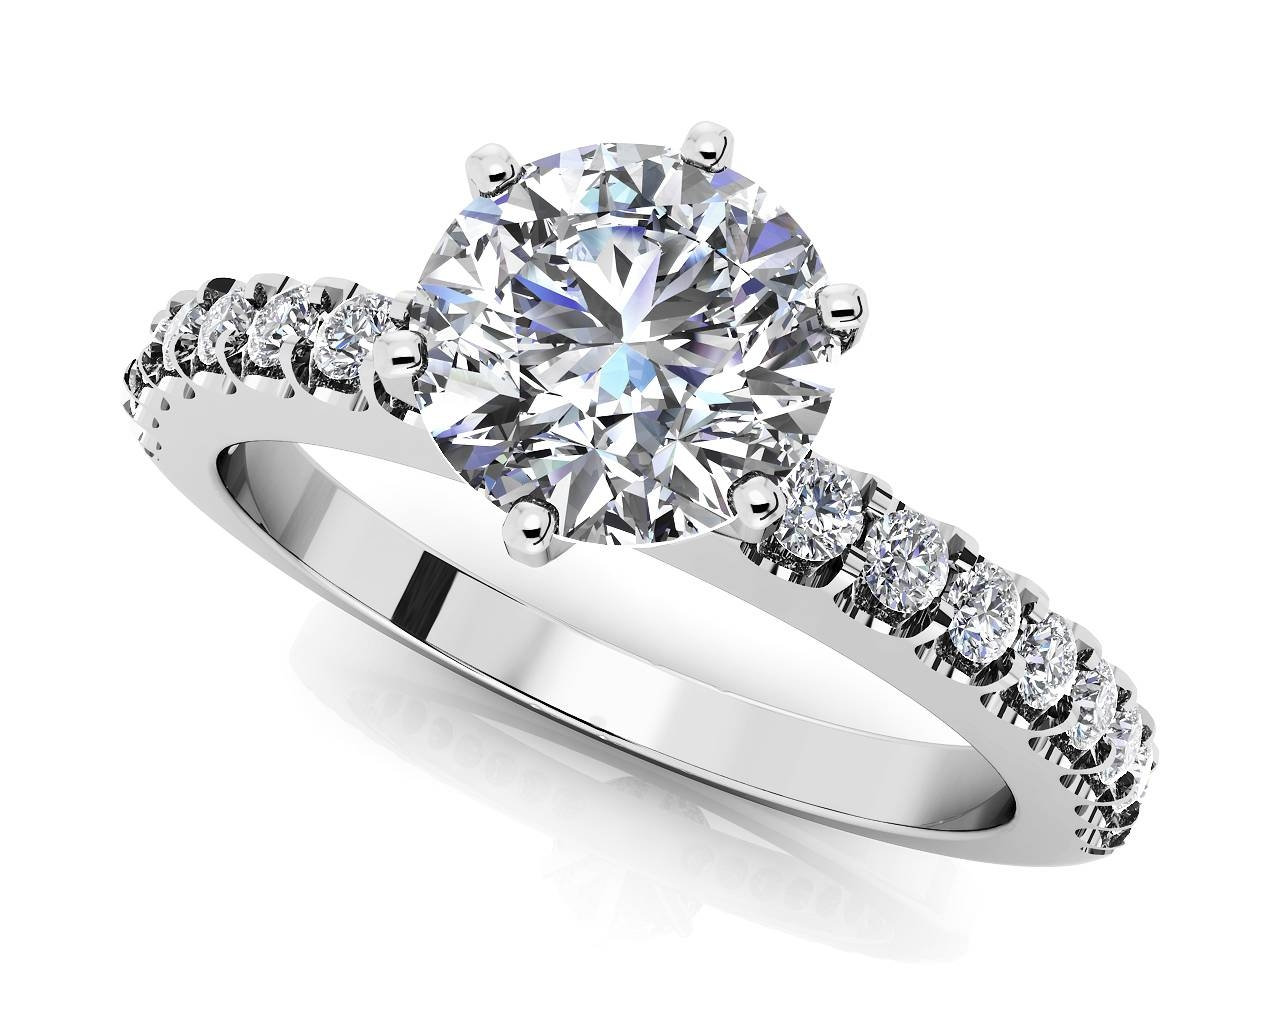 Customize Your Own High Quality Diamond Engagement Ring Regarding Certified Diamond Wedding Rings (View 3 of 15)